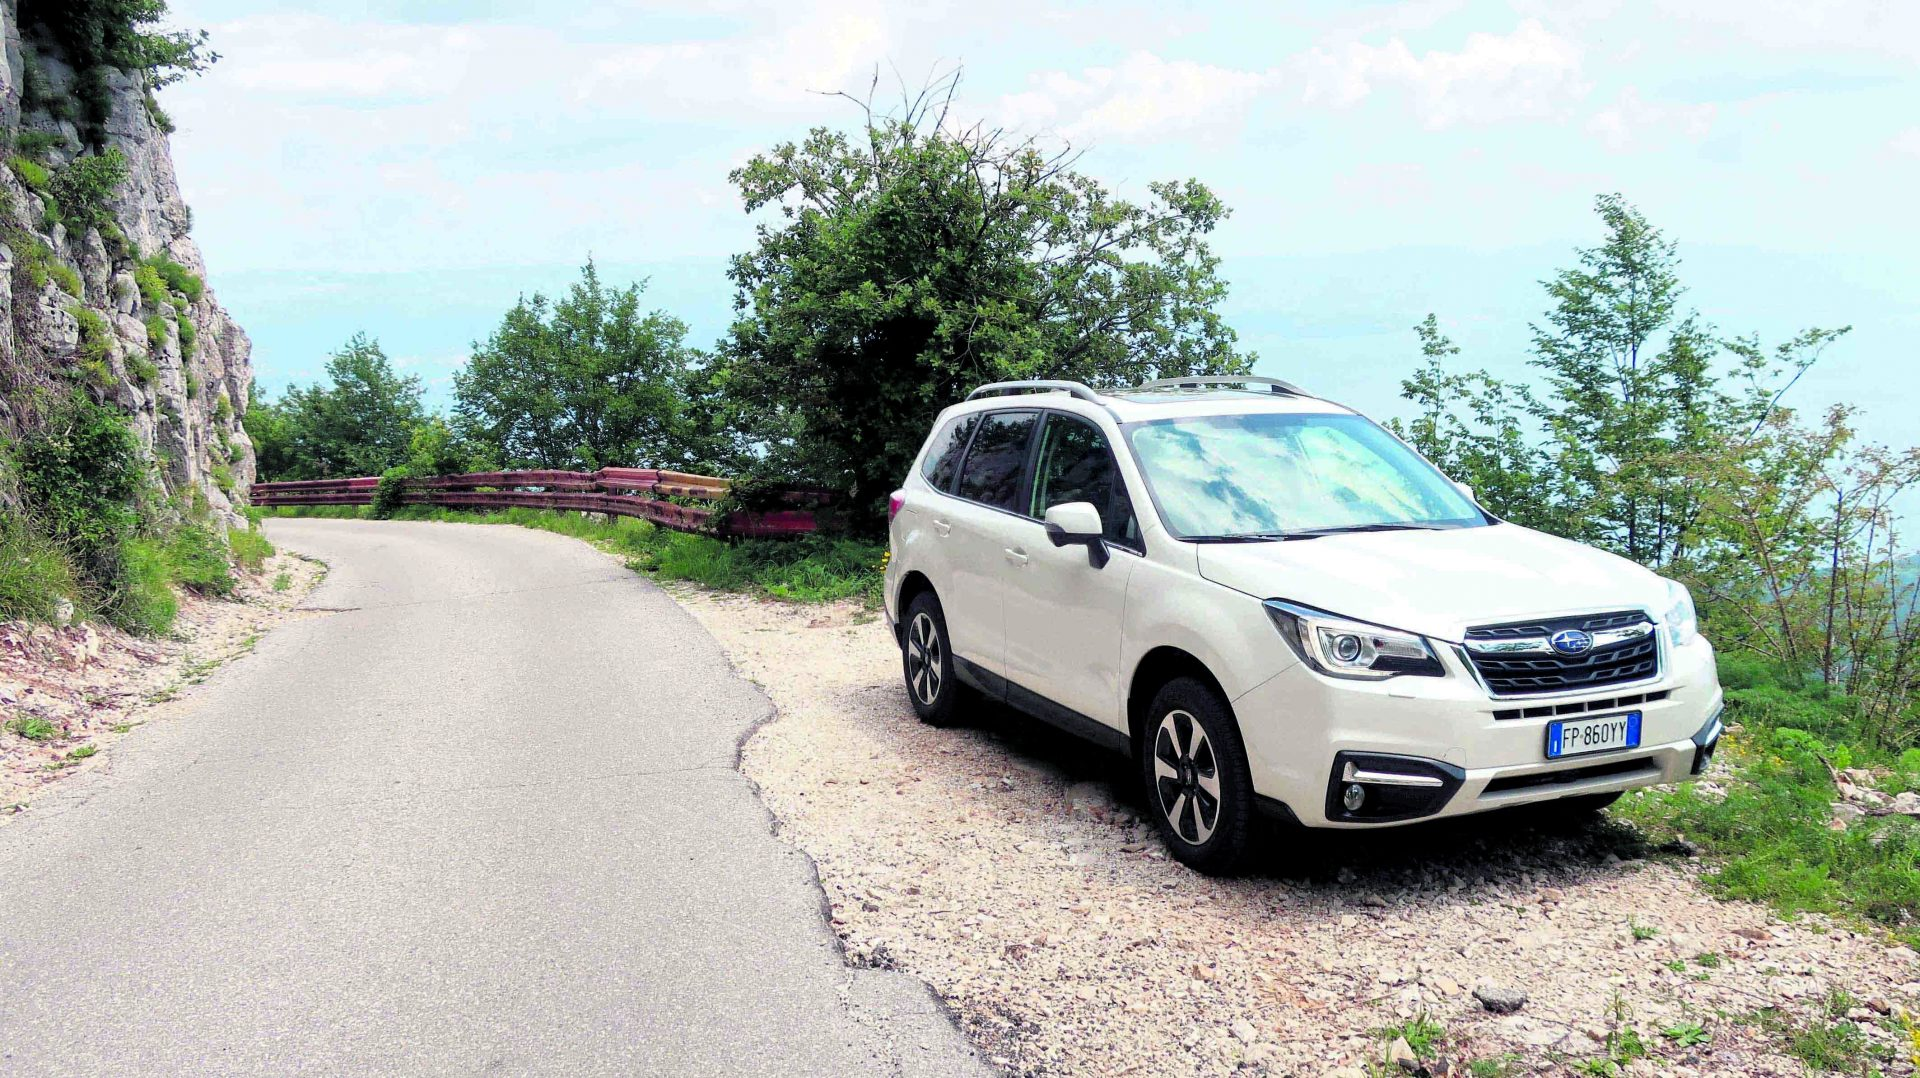 TEST Subaru Forester 2.0i 150 CVT Unlimited SAAS